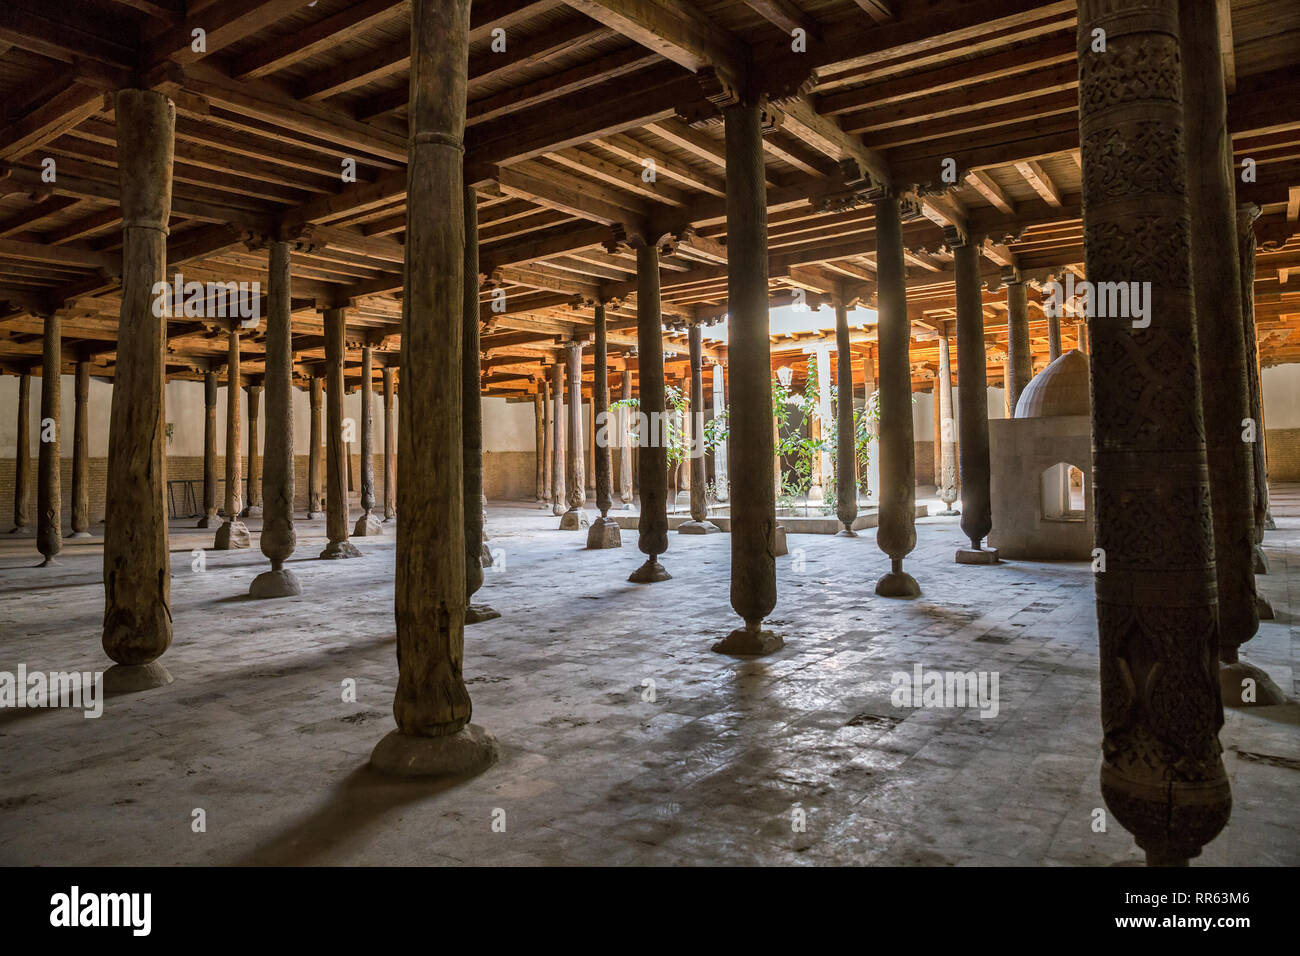 Carved wooden columns of the Juma mosque (Friday mosque) in the Khiva fortress Ichan-Kala, Uzbekistan - Stock Image